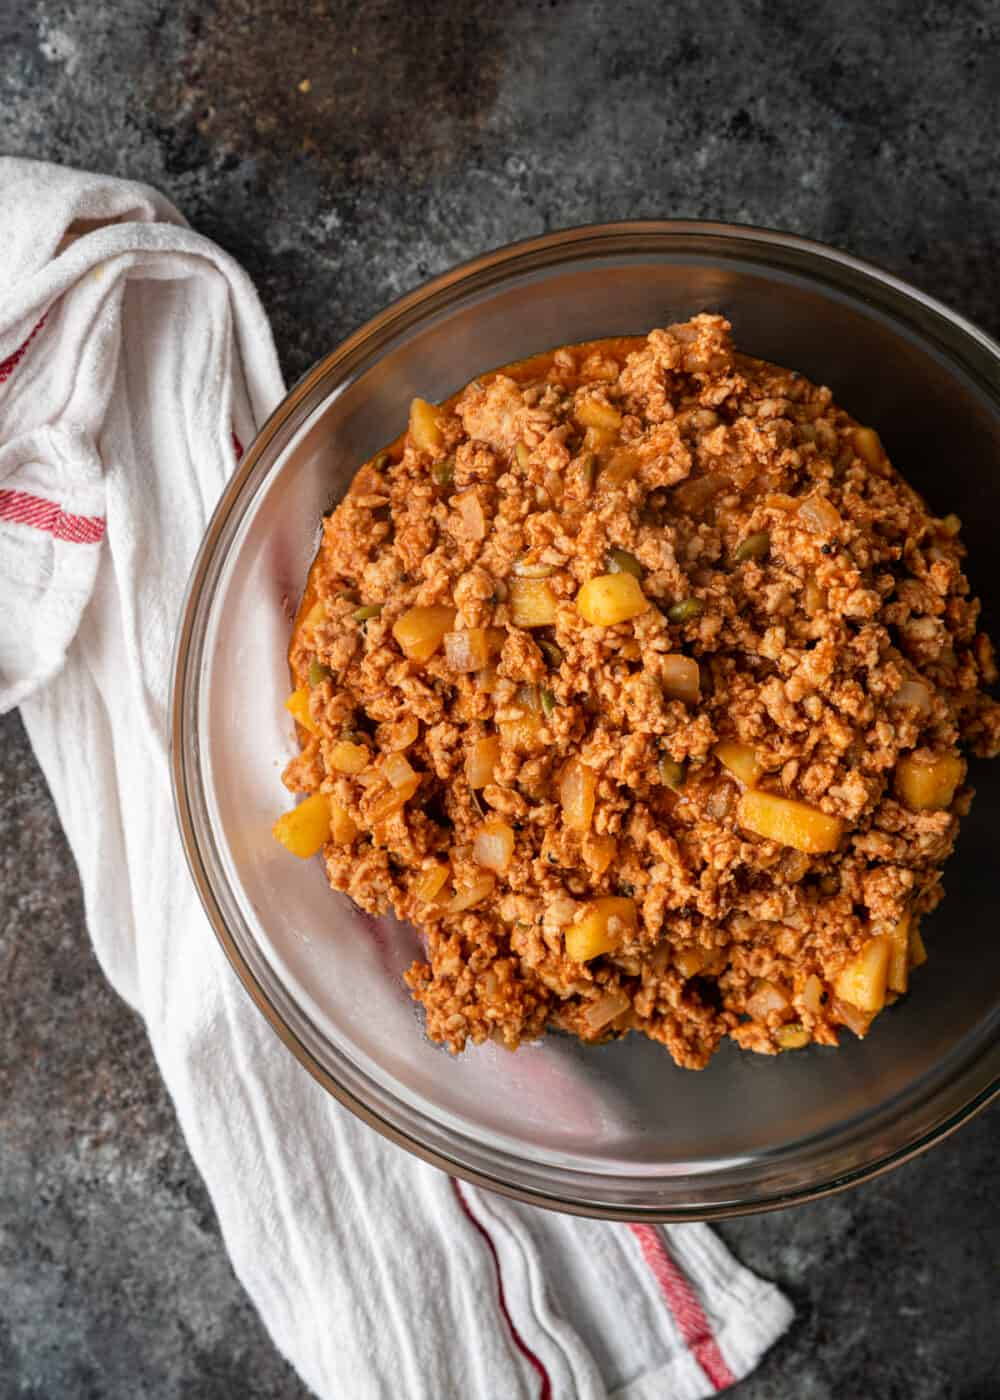 overhead: bowl with spicy ground chicken mixture for stuffed peppers